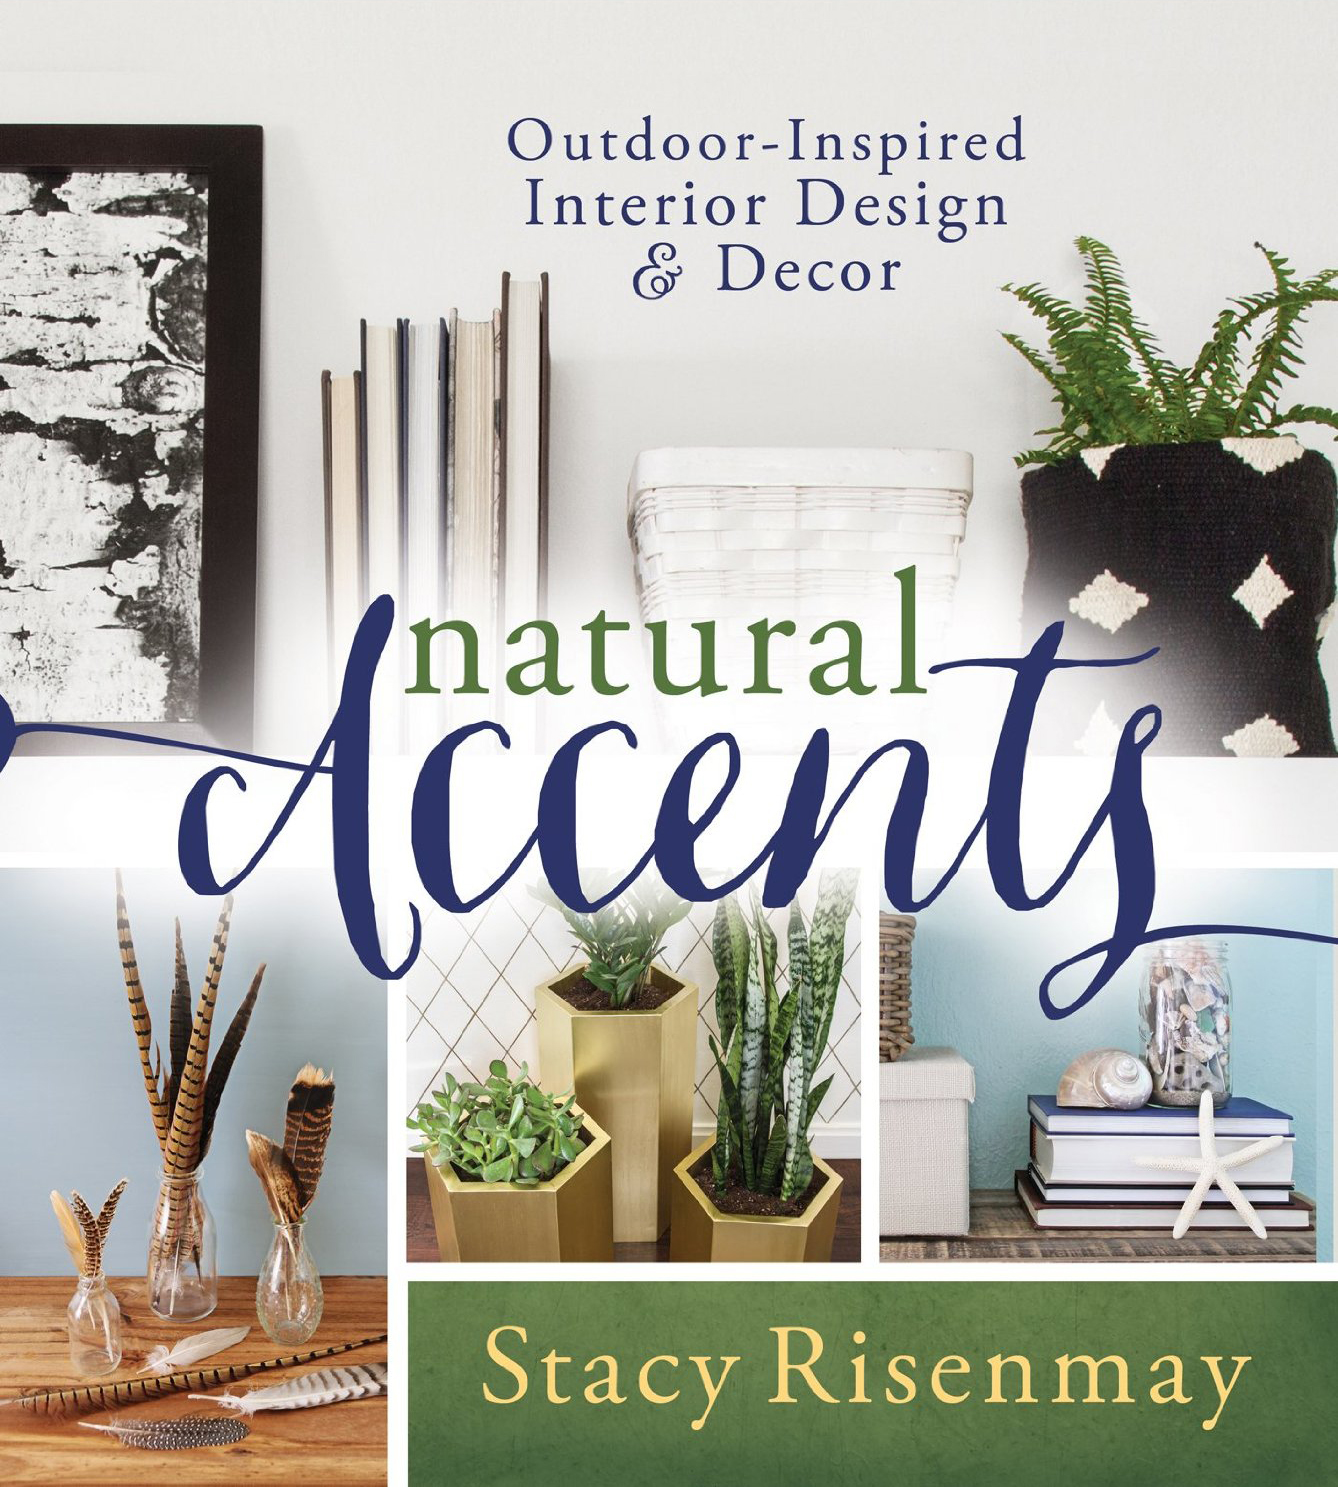 Natural Accents Book Giveaway!